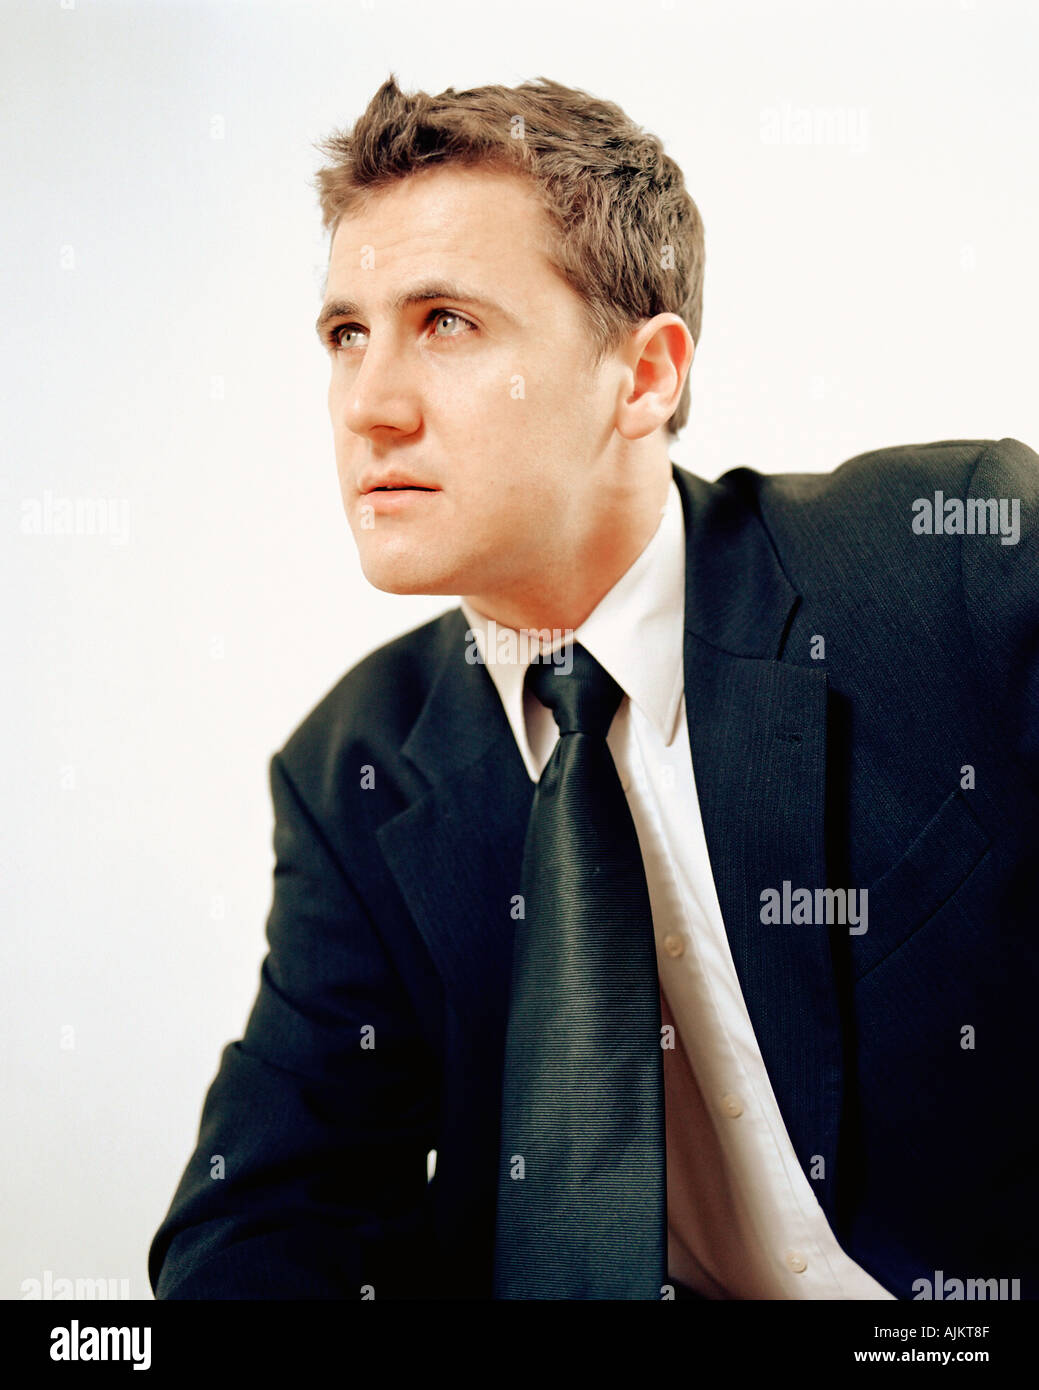 Man in suit poses theatrically - Stock Image